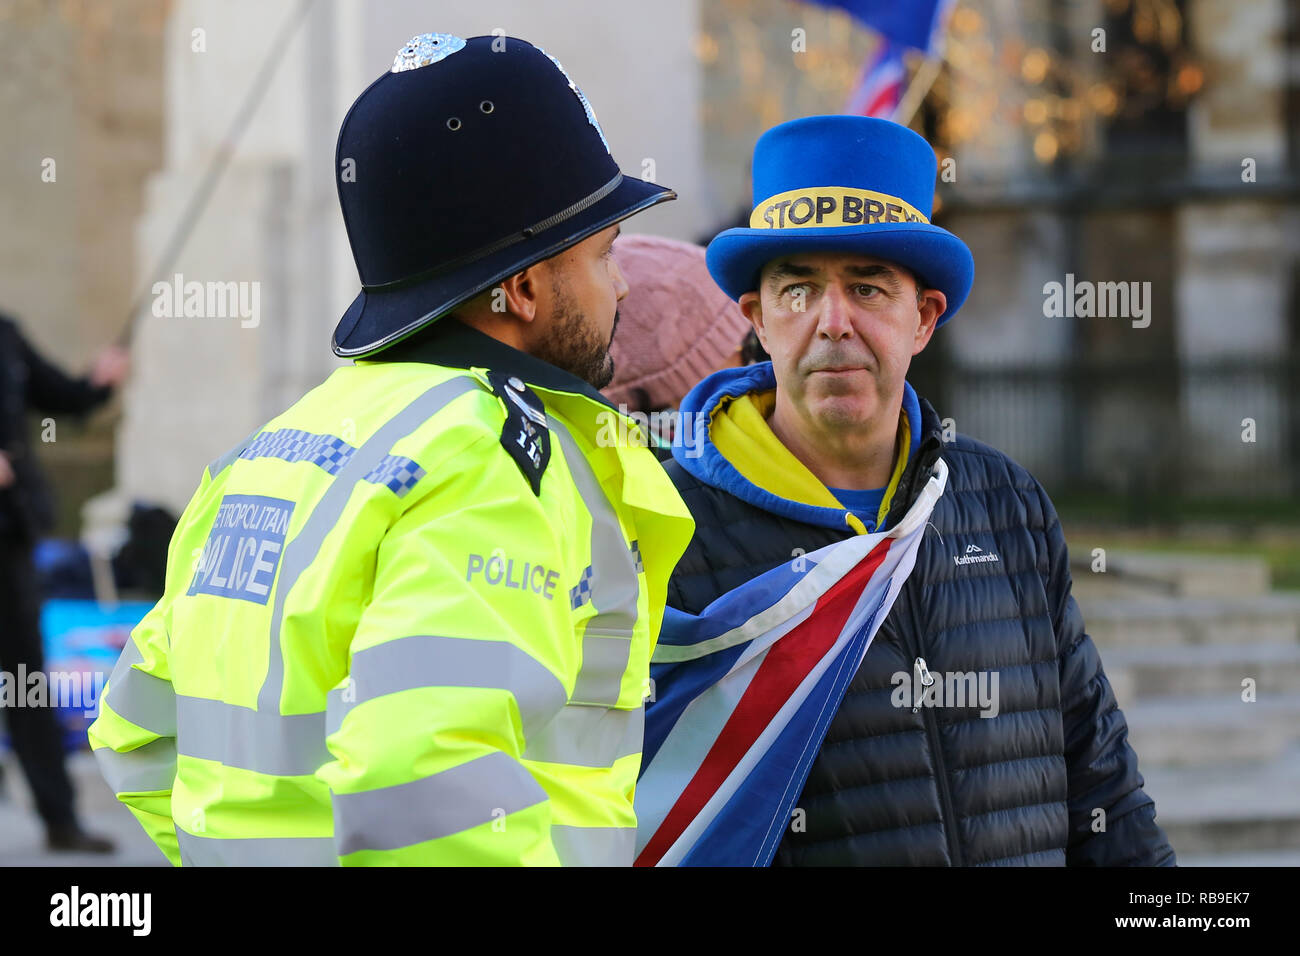 London, UK. 8th Jan, 2019. A pro-Brexit demonstrator seen wearing a blue hat saying stop Brexit during the protest.Anti Brexit demonstrators gather outside the British Parliament a week before the MPs to vote on the finalized Brexit deal, MPs will vote on Theresa May's Brexit deal on Tuesday, 15 January. Credit: Dinendra Haria/SOPA Images/ZUMA Wire/Alamy Live News - Stock Image